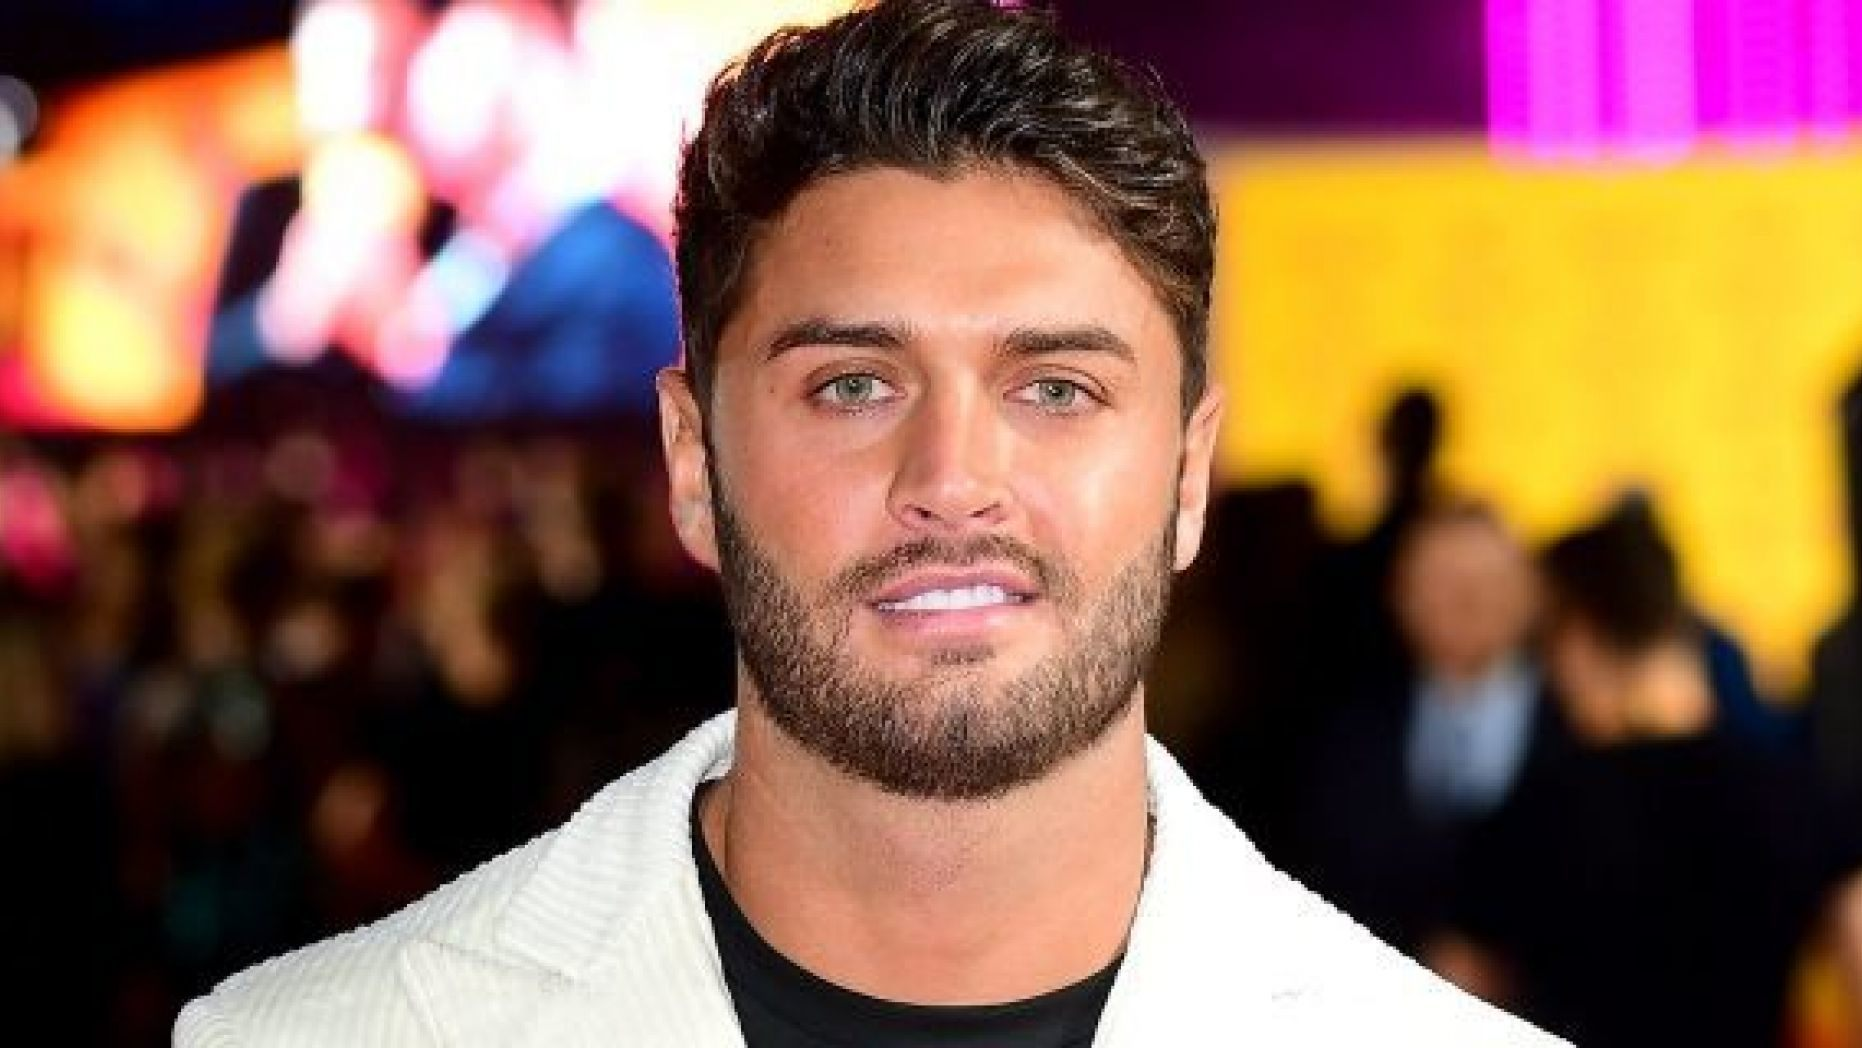 """Love Island"" star Mike Thalassitis was found dead Friday, reports said. He was 26."